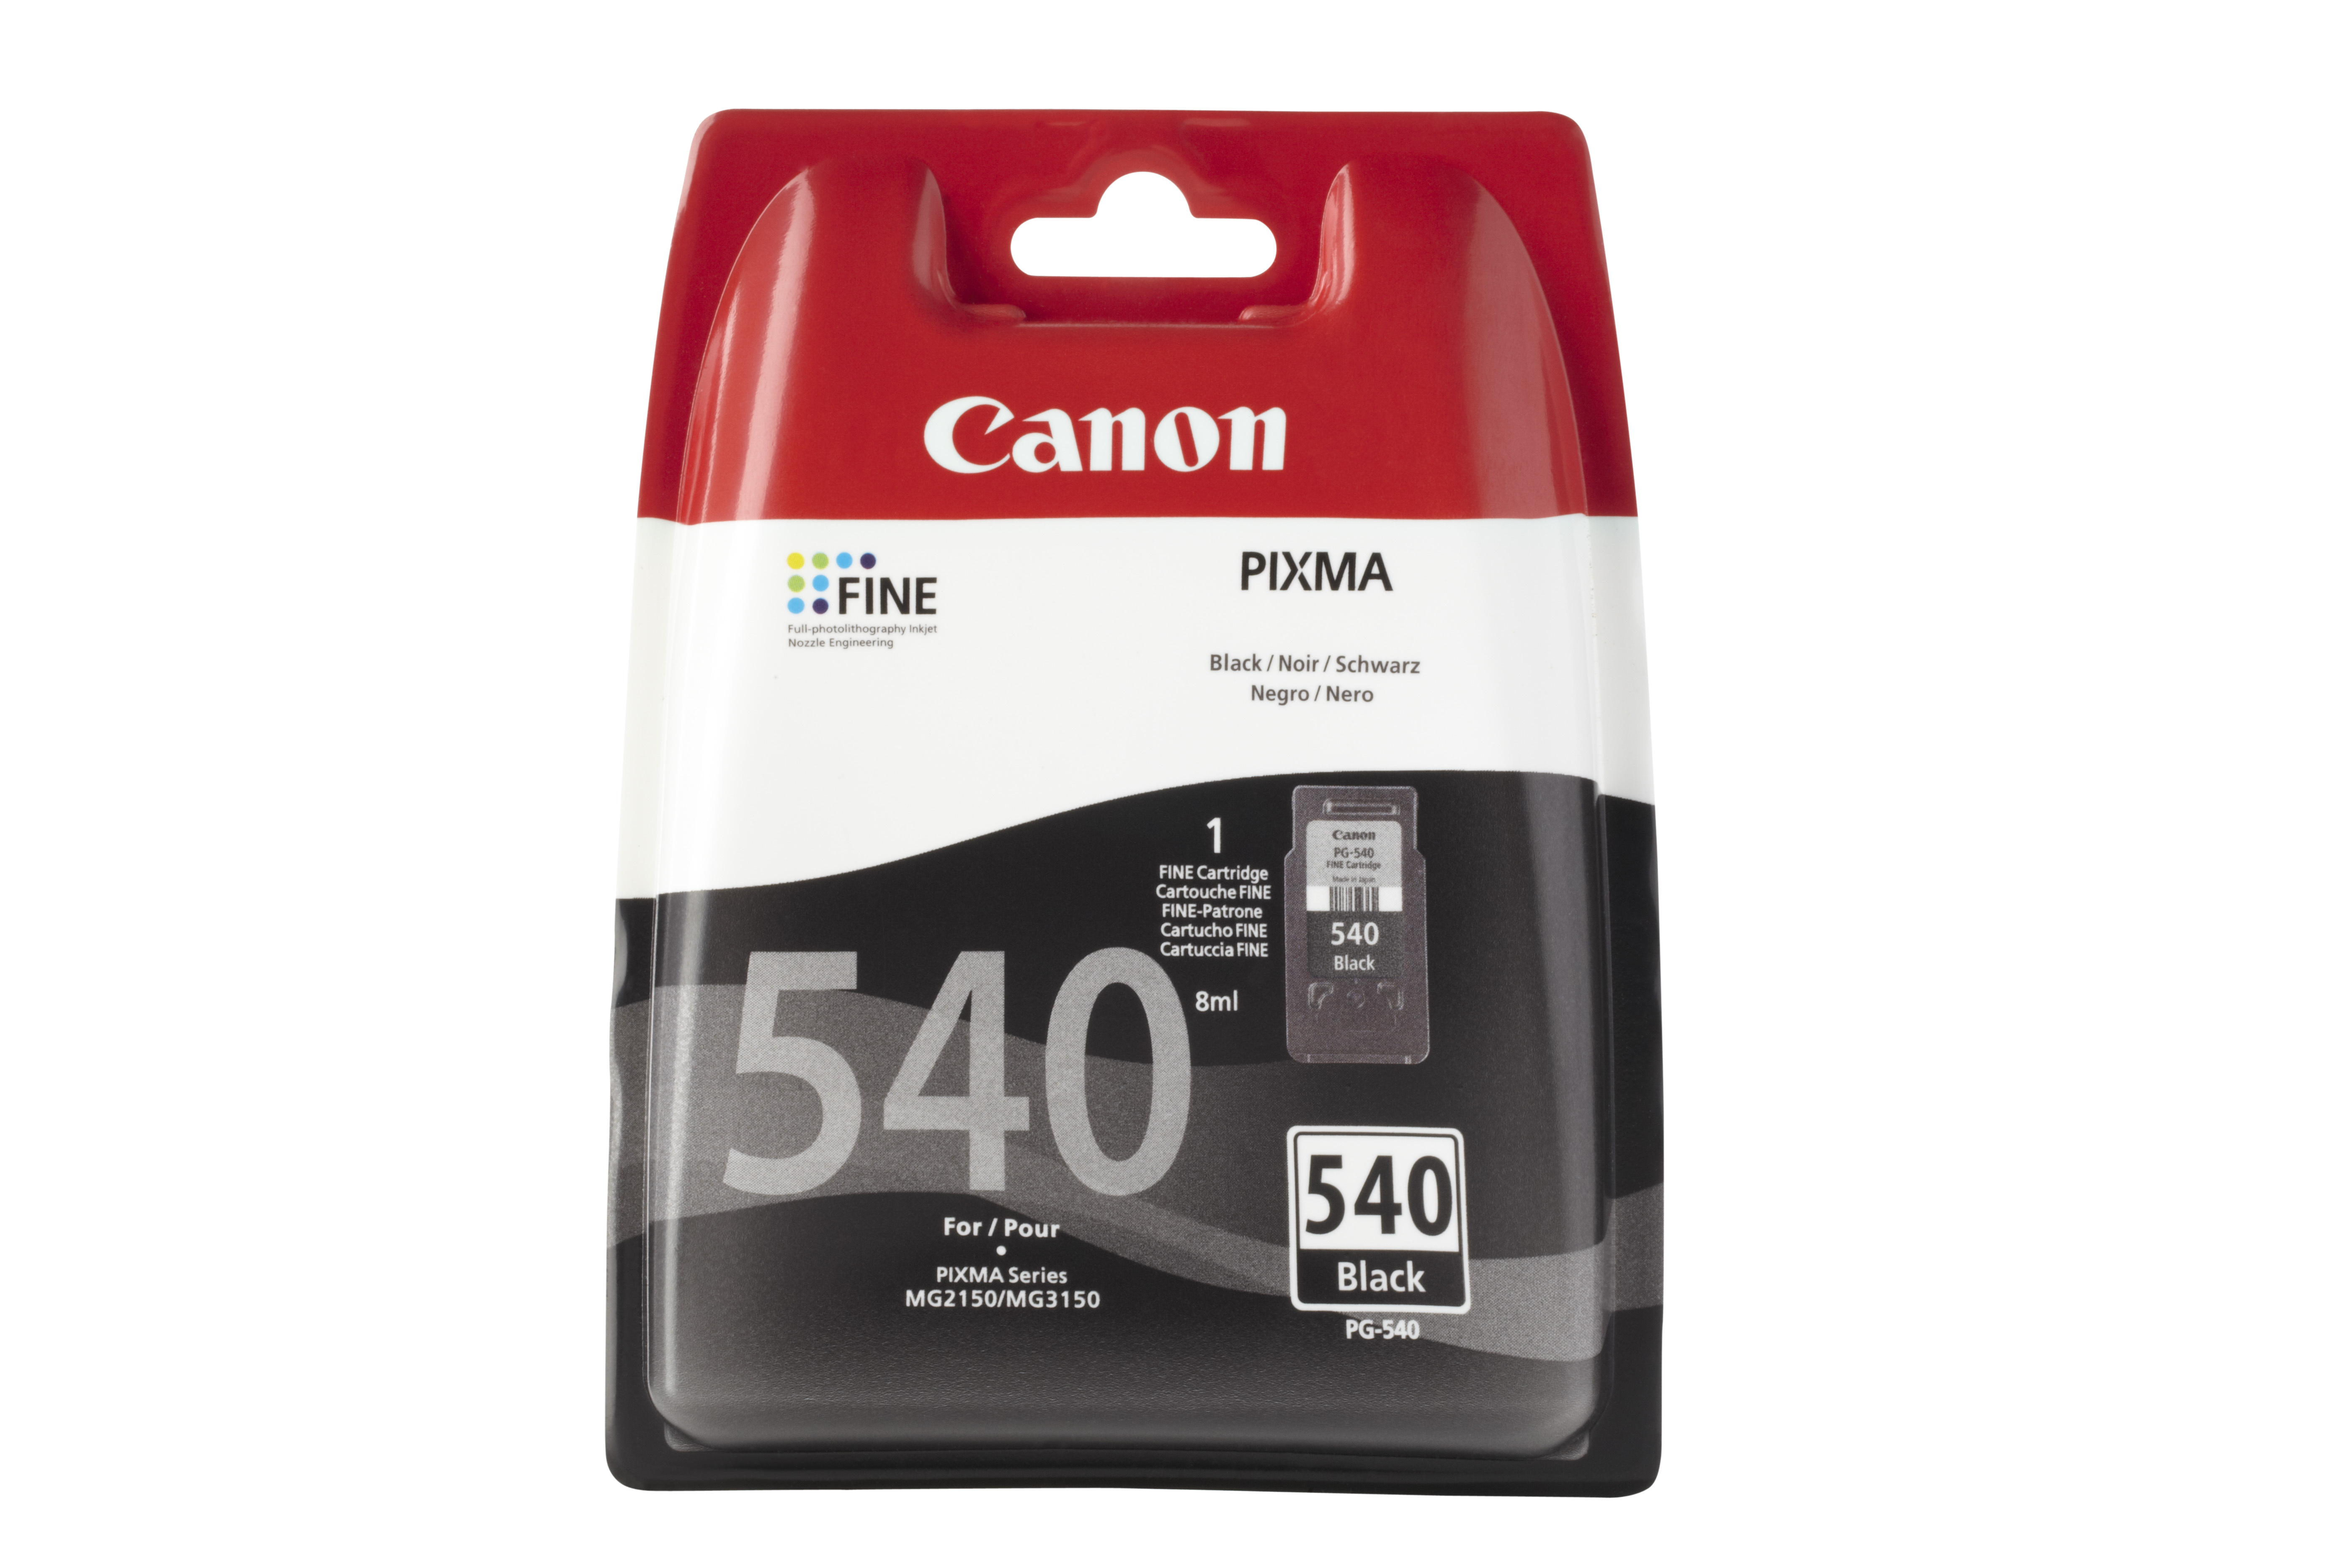 Blue Box Reman Canon 5225B005 (PG-540) Black Inkjet 5225B005 - rem01